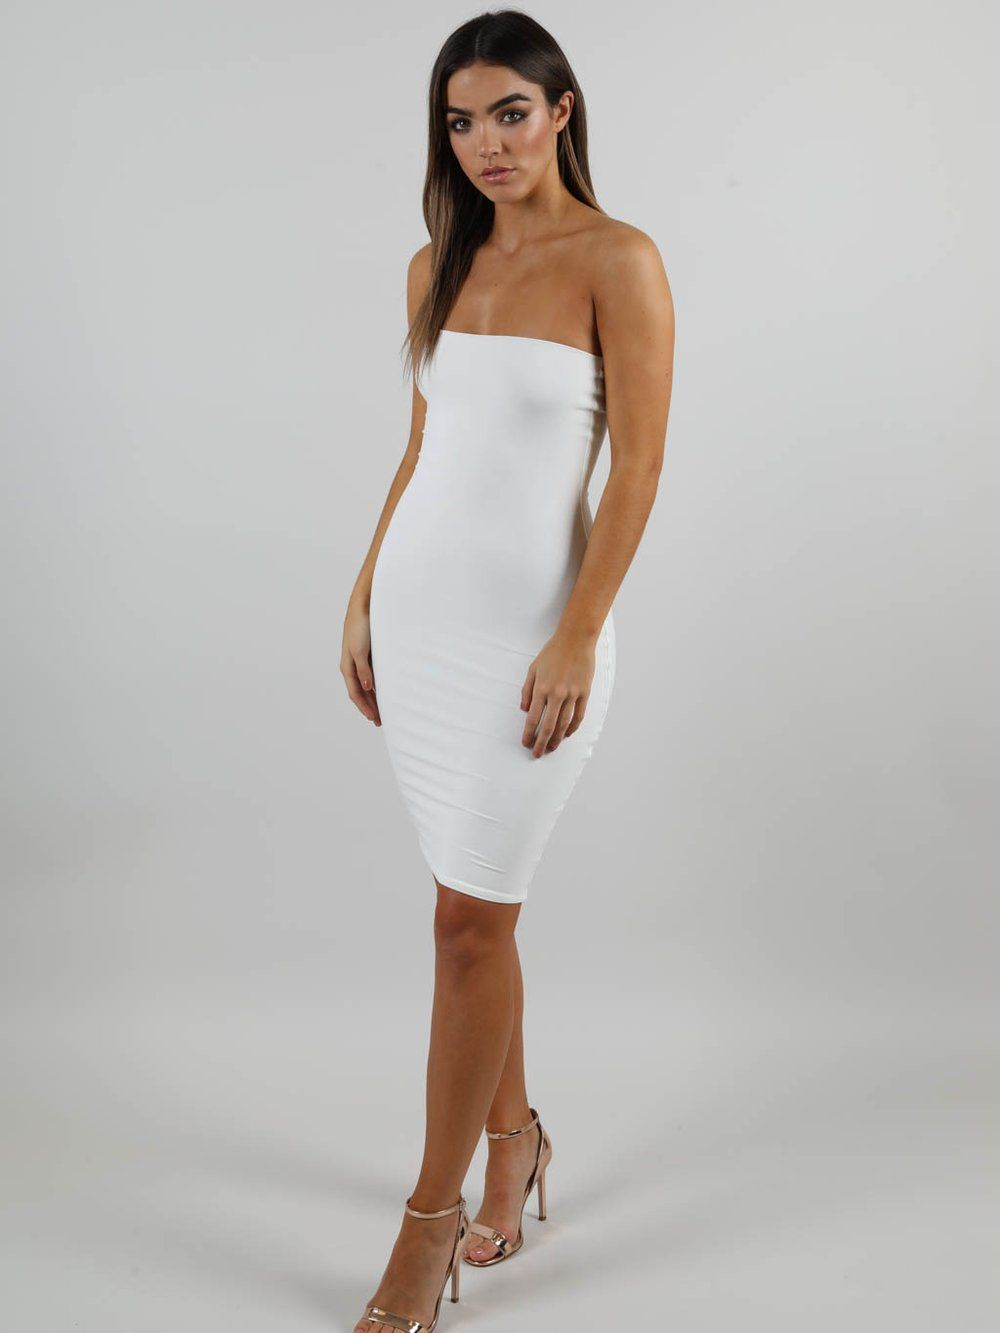 417c5fedc74 AYM studio clothing bodycon midi length tube dress. Perfect for both party  wear, special